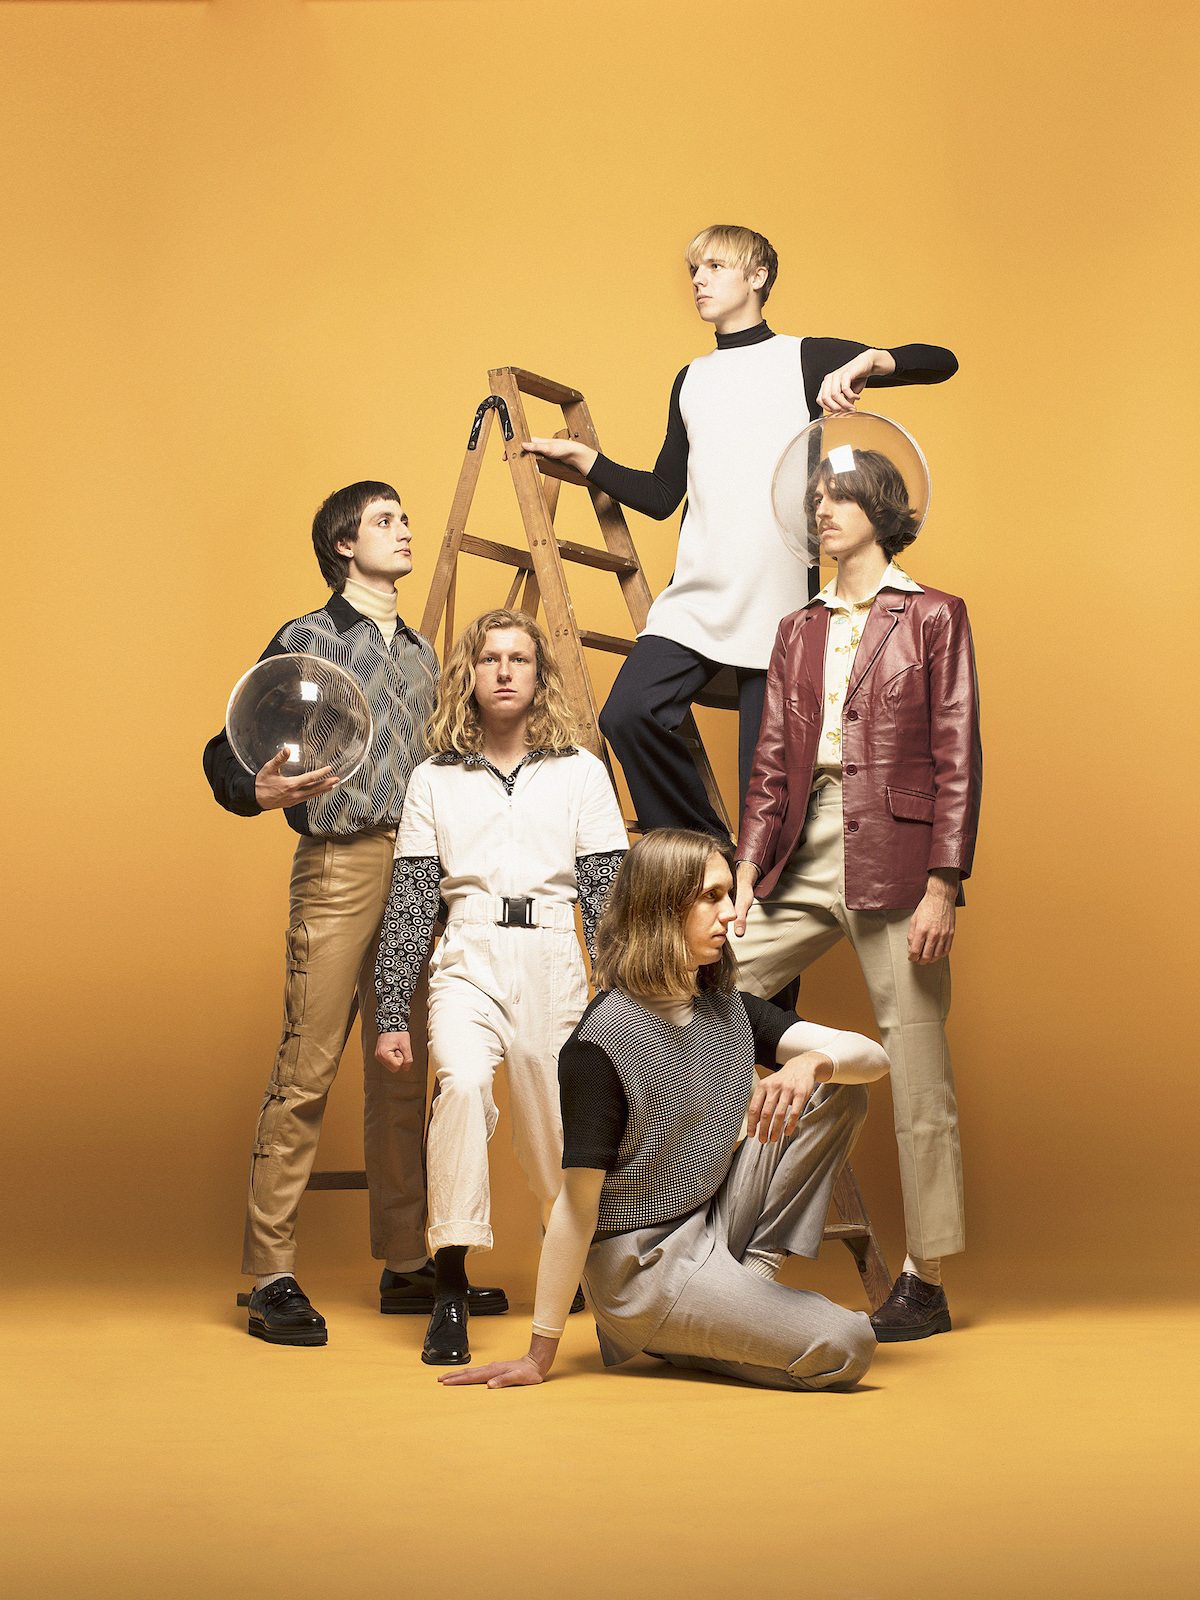 Parcels (Credit Anna-Lena Krause + Olive Brown)